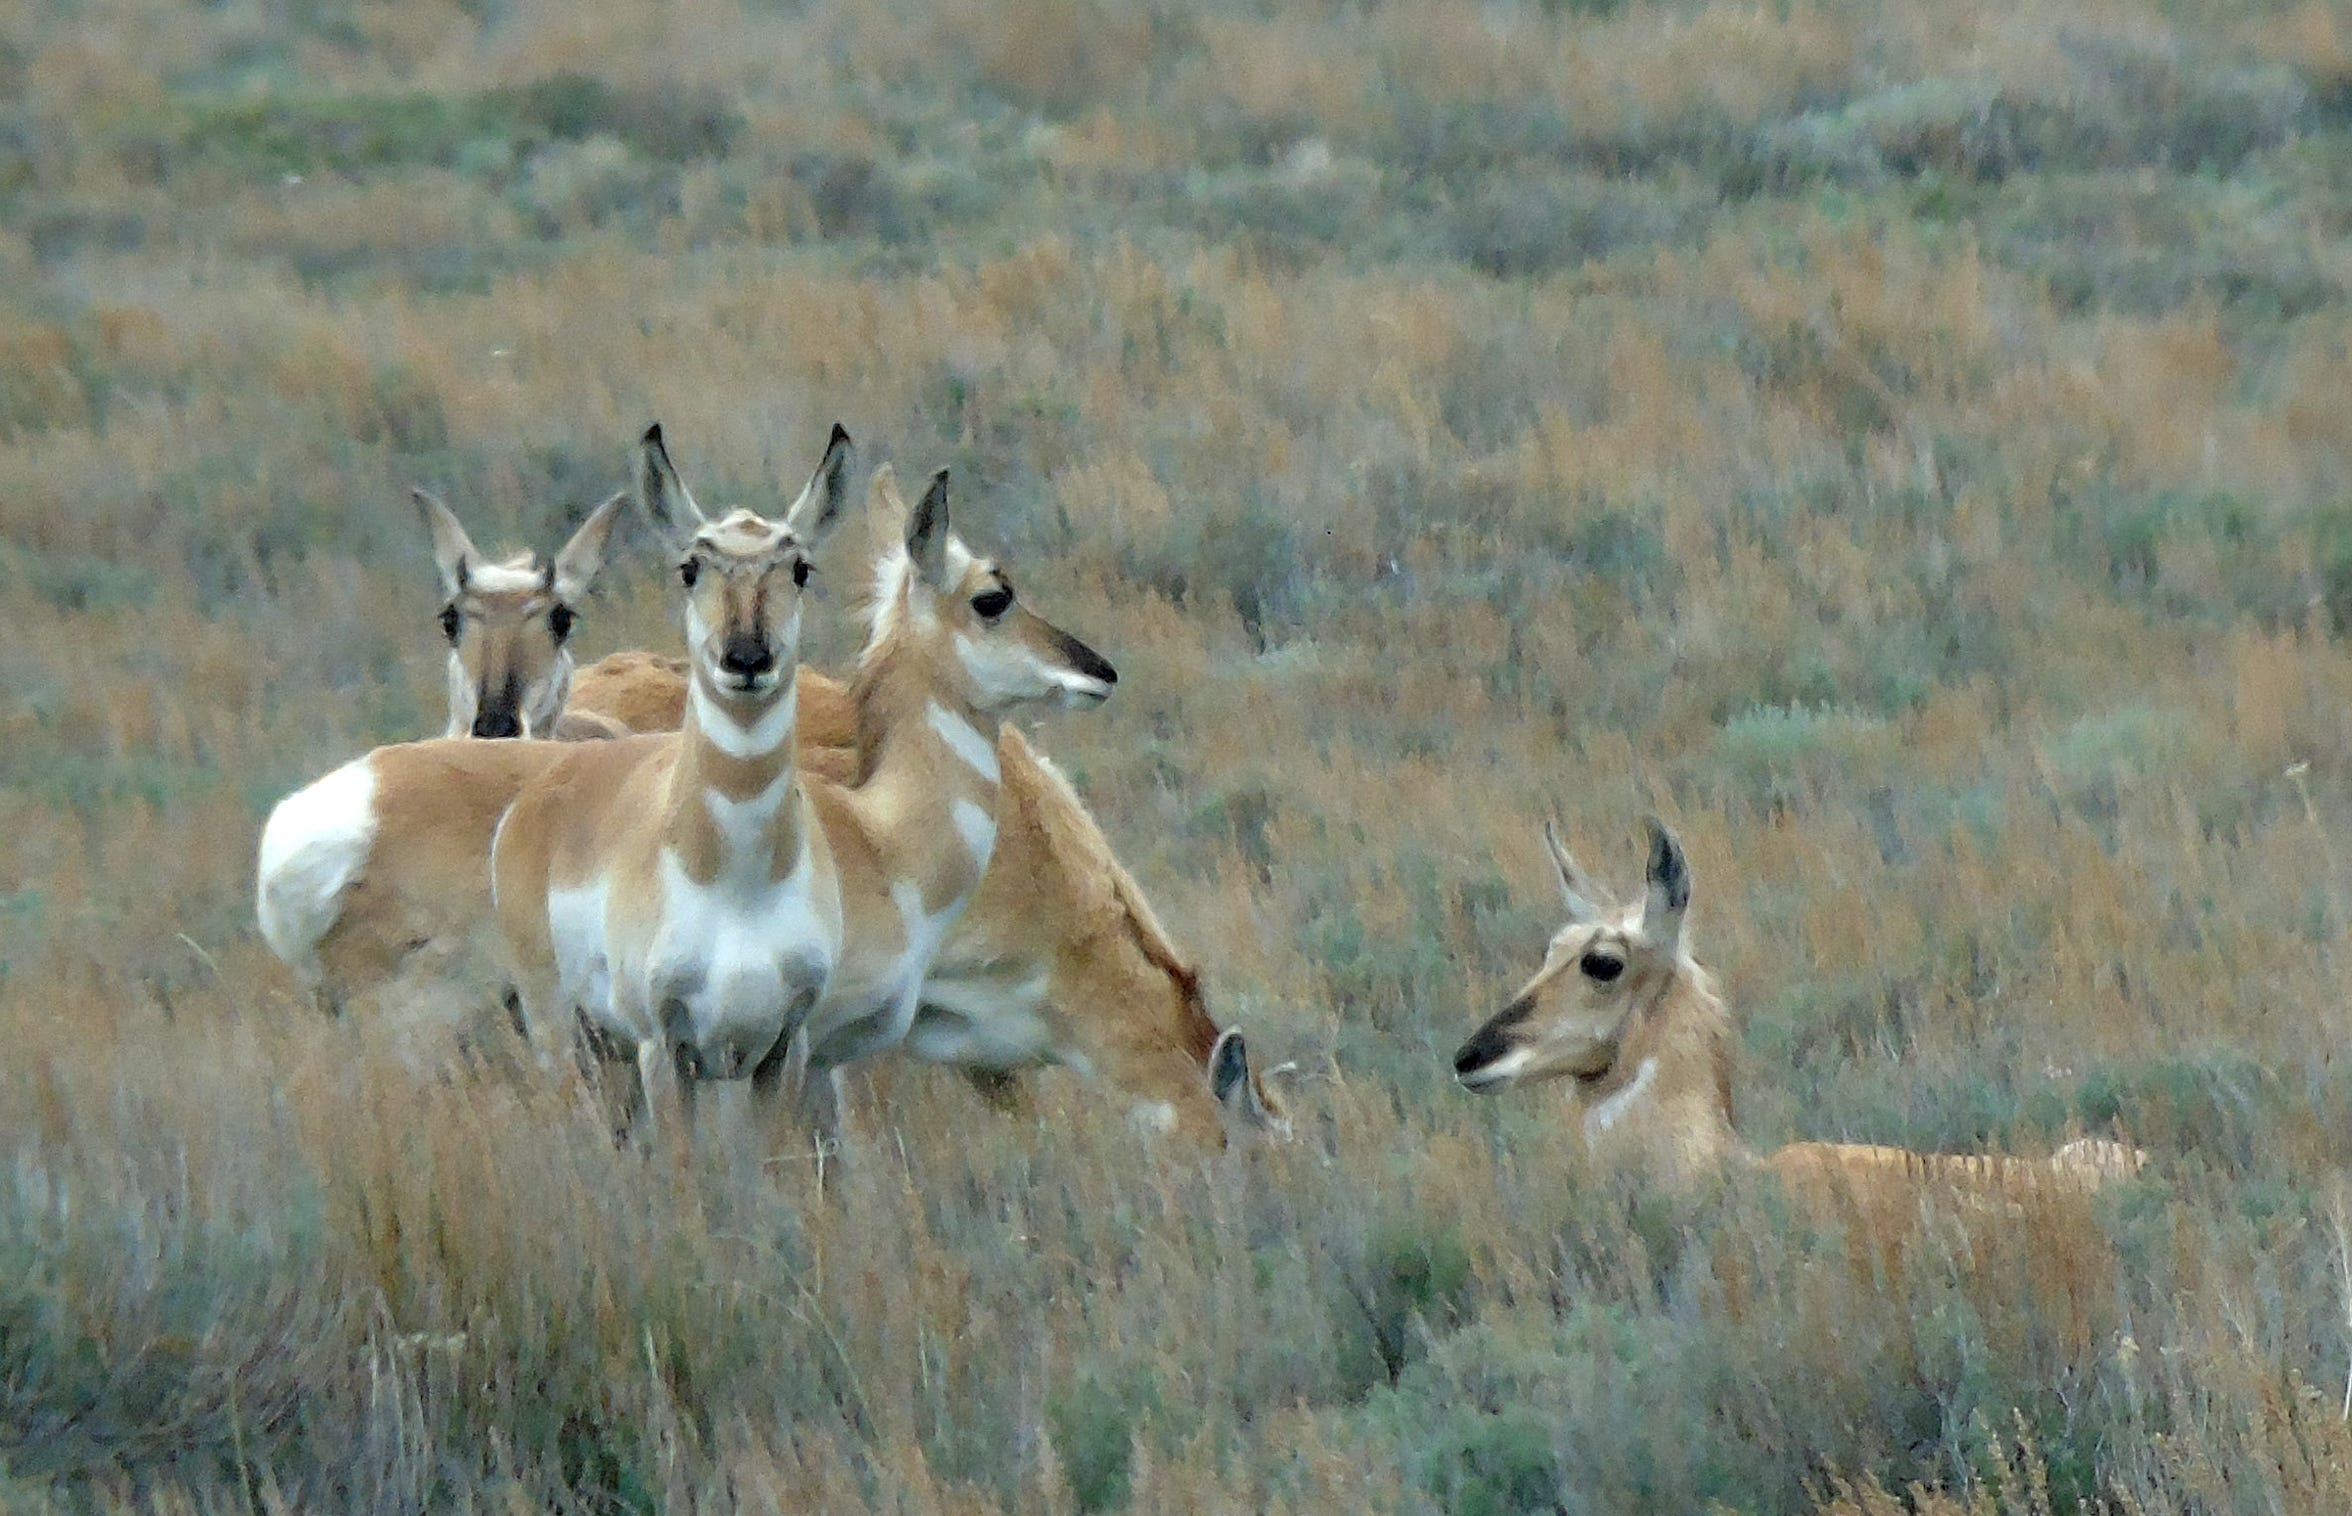 Antelope roam in Montana's remote Centennial Valley, an important wildlife corridor in the greater Yellowstone ecosystem.